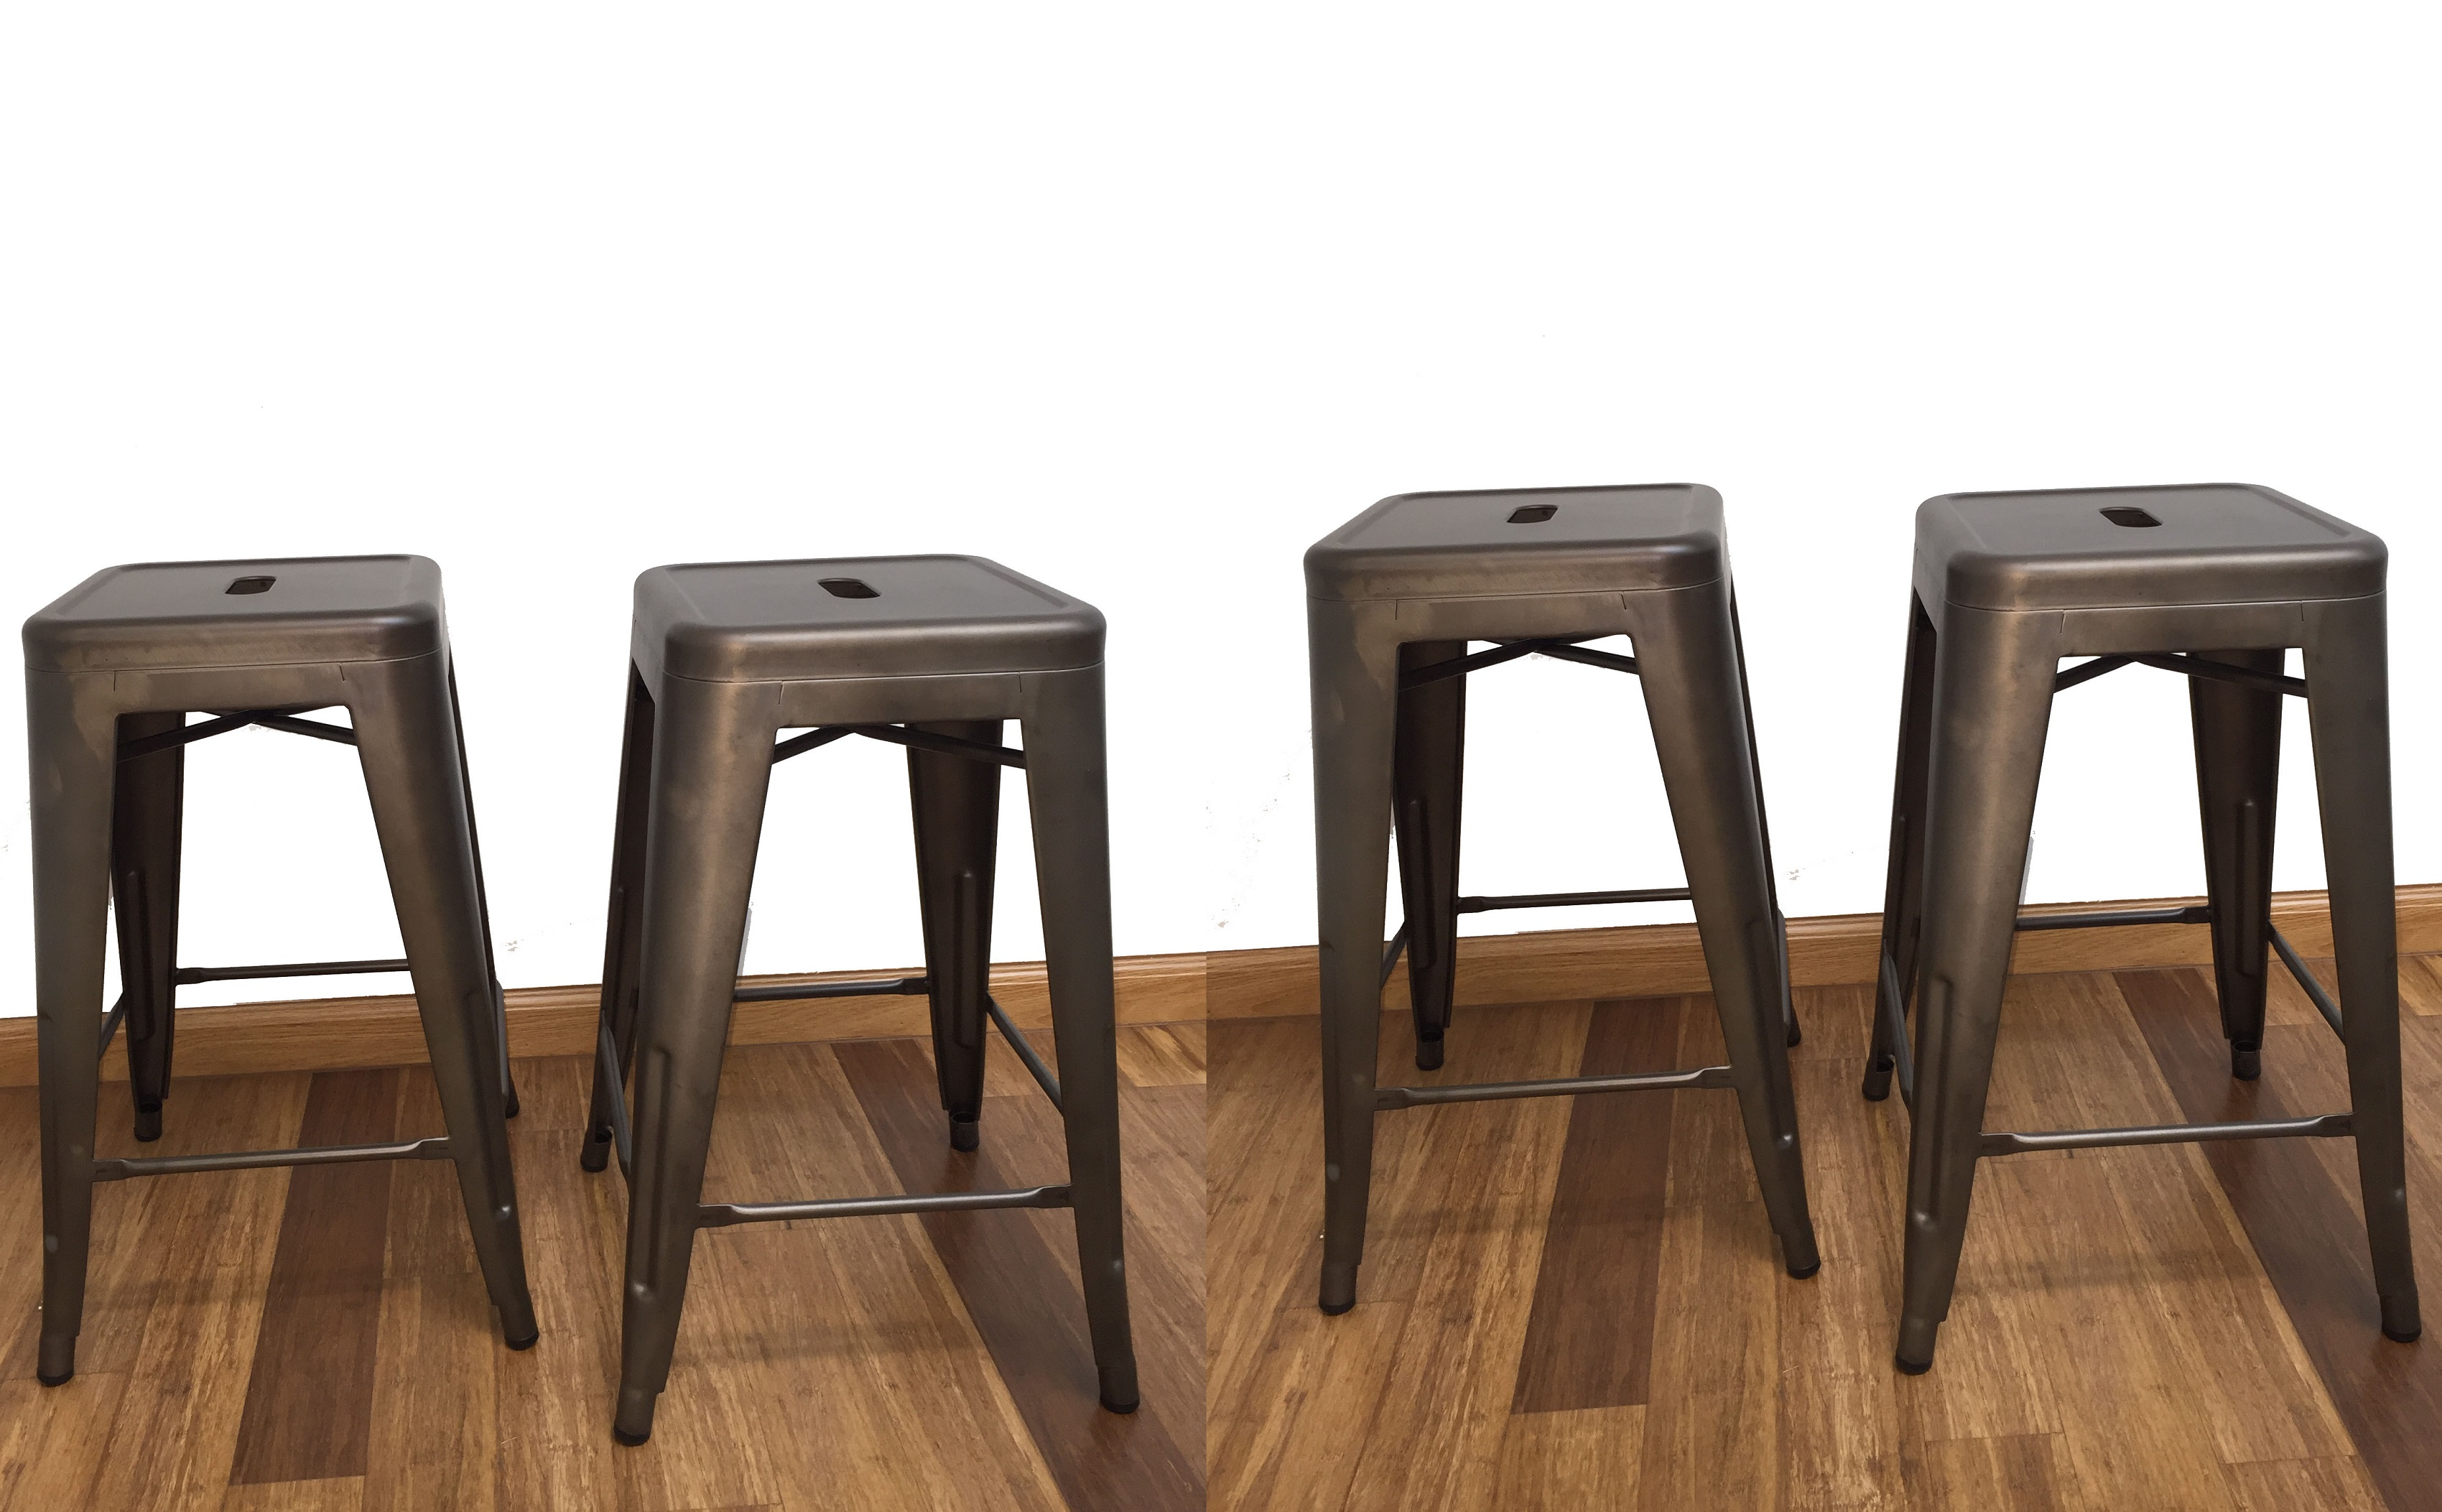 BTEXPERT® 24-inch Industrial stacking Metal Vintage Antique Copper Rustic Distressed Dining room Counter  sc 1 st  Walmart : modern rustic bar stools - islam-shia.org